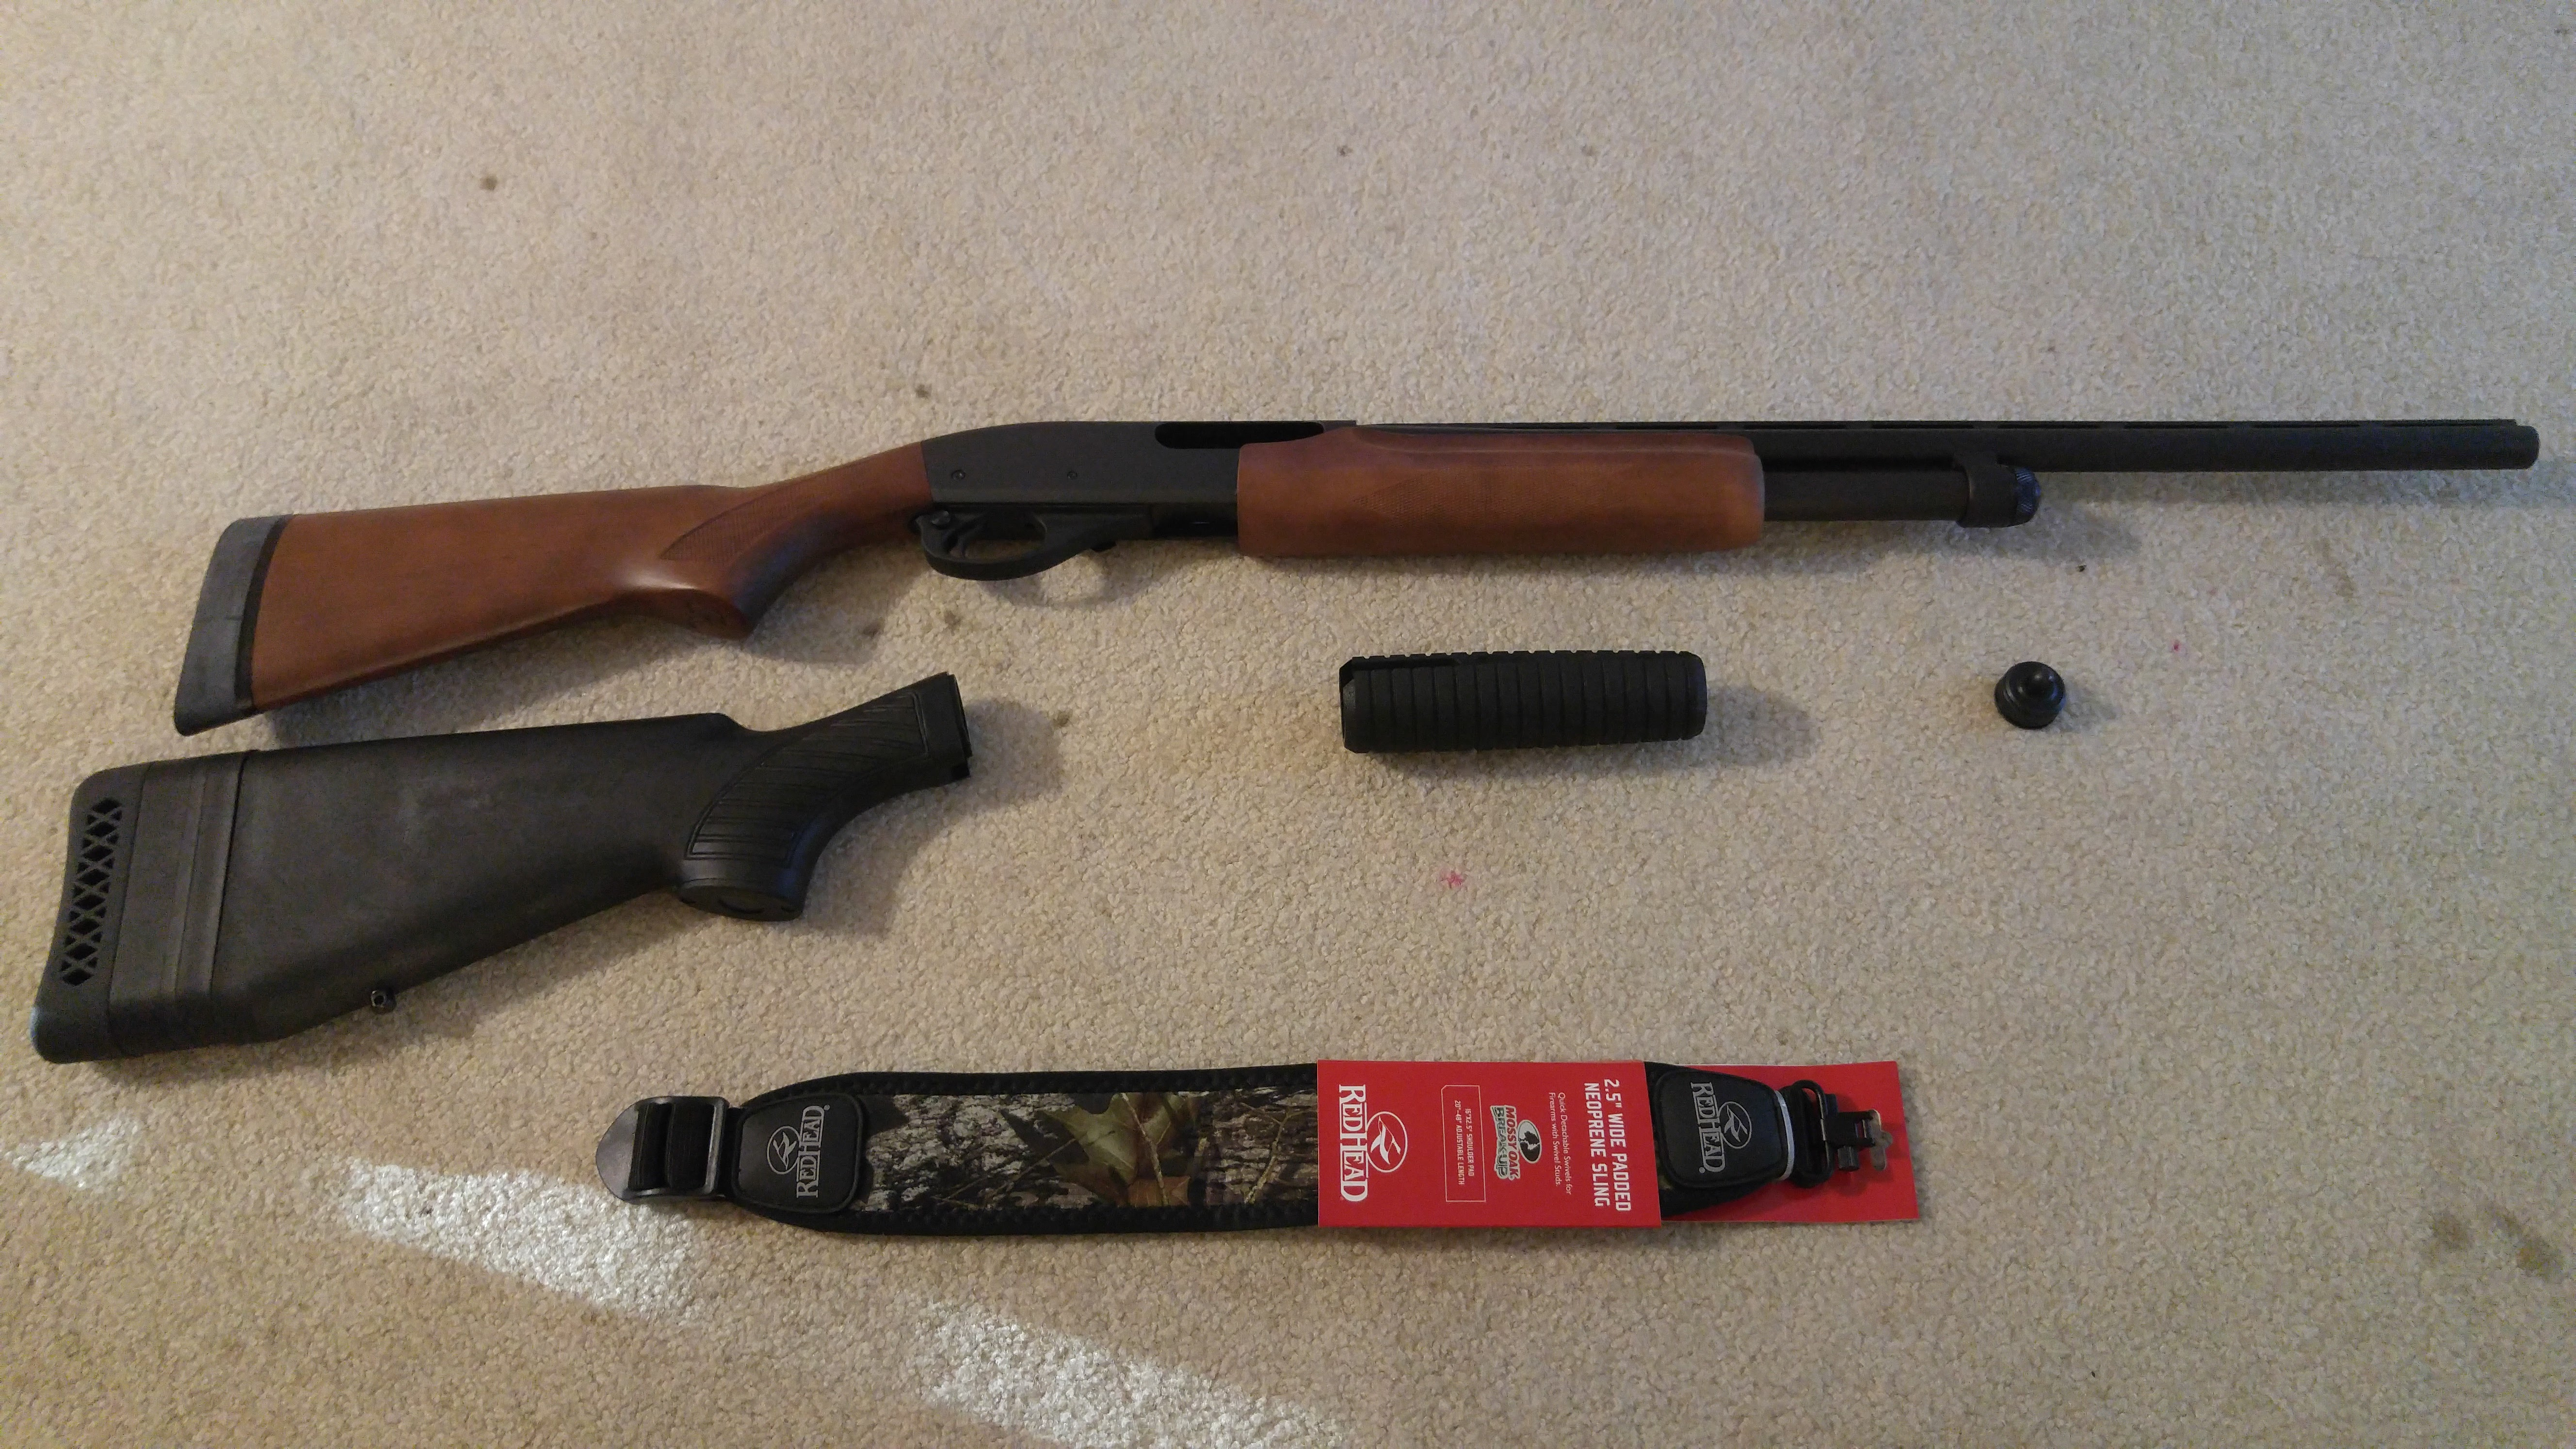 106 - Tricking Out the New Turkey Hunting Shotgun - Part 2